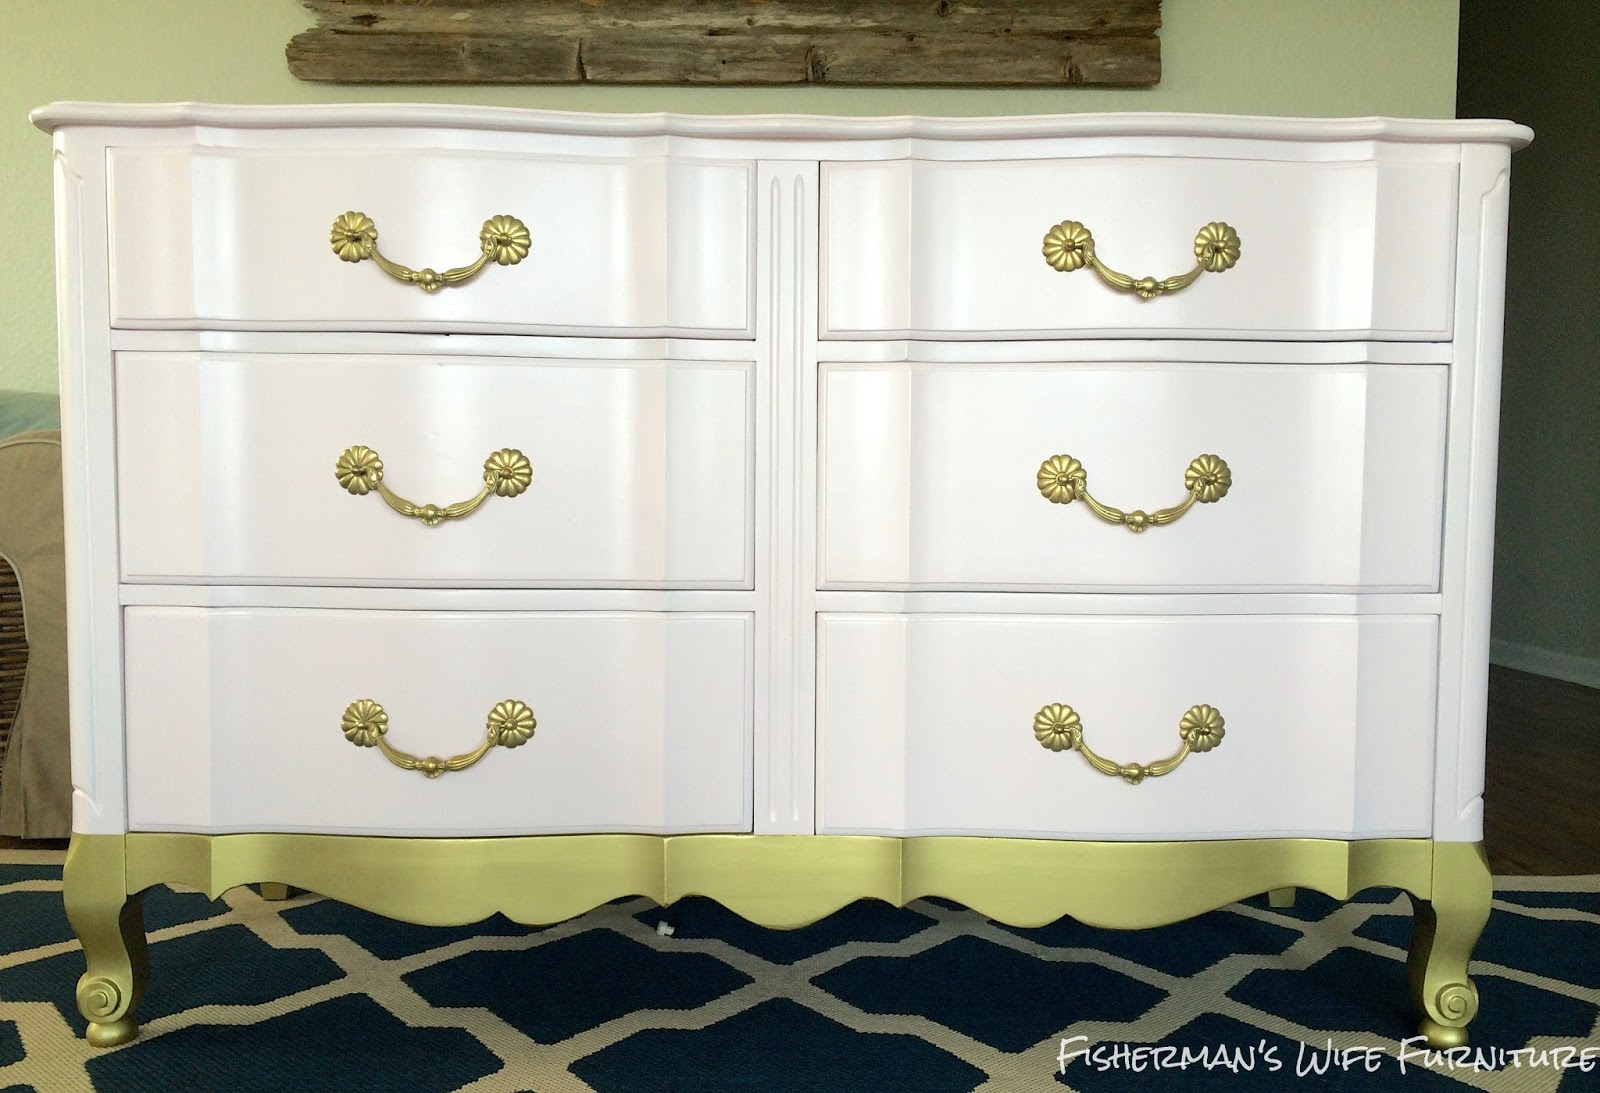 My Client Decided She Wanted The Dresser To Look Gold Dipped Which I Love Soft Pink With Br Handles And Legs Is A Beautiful